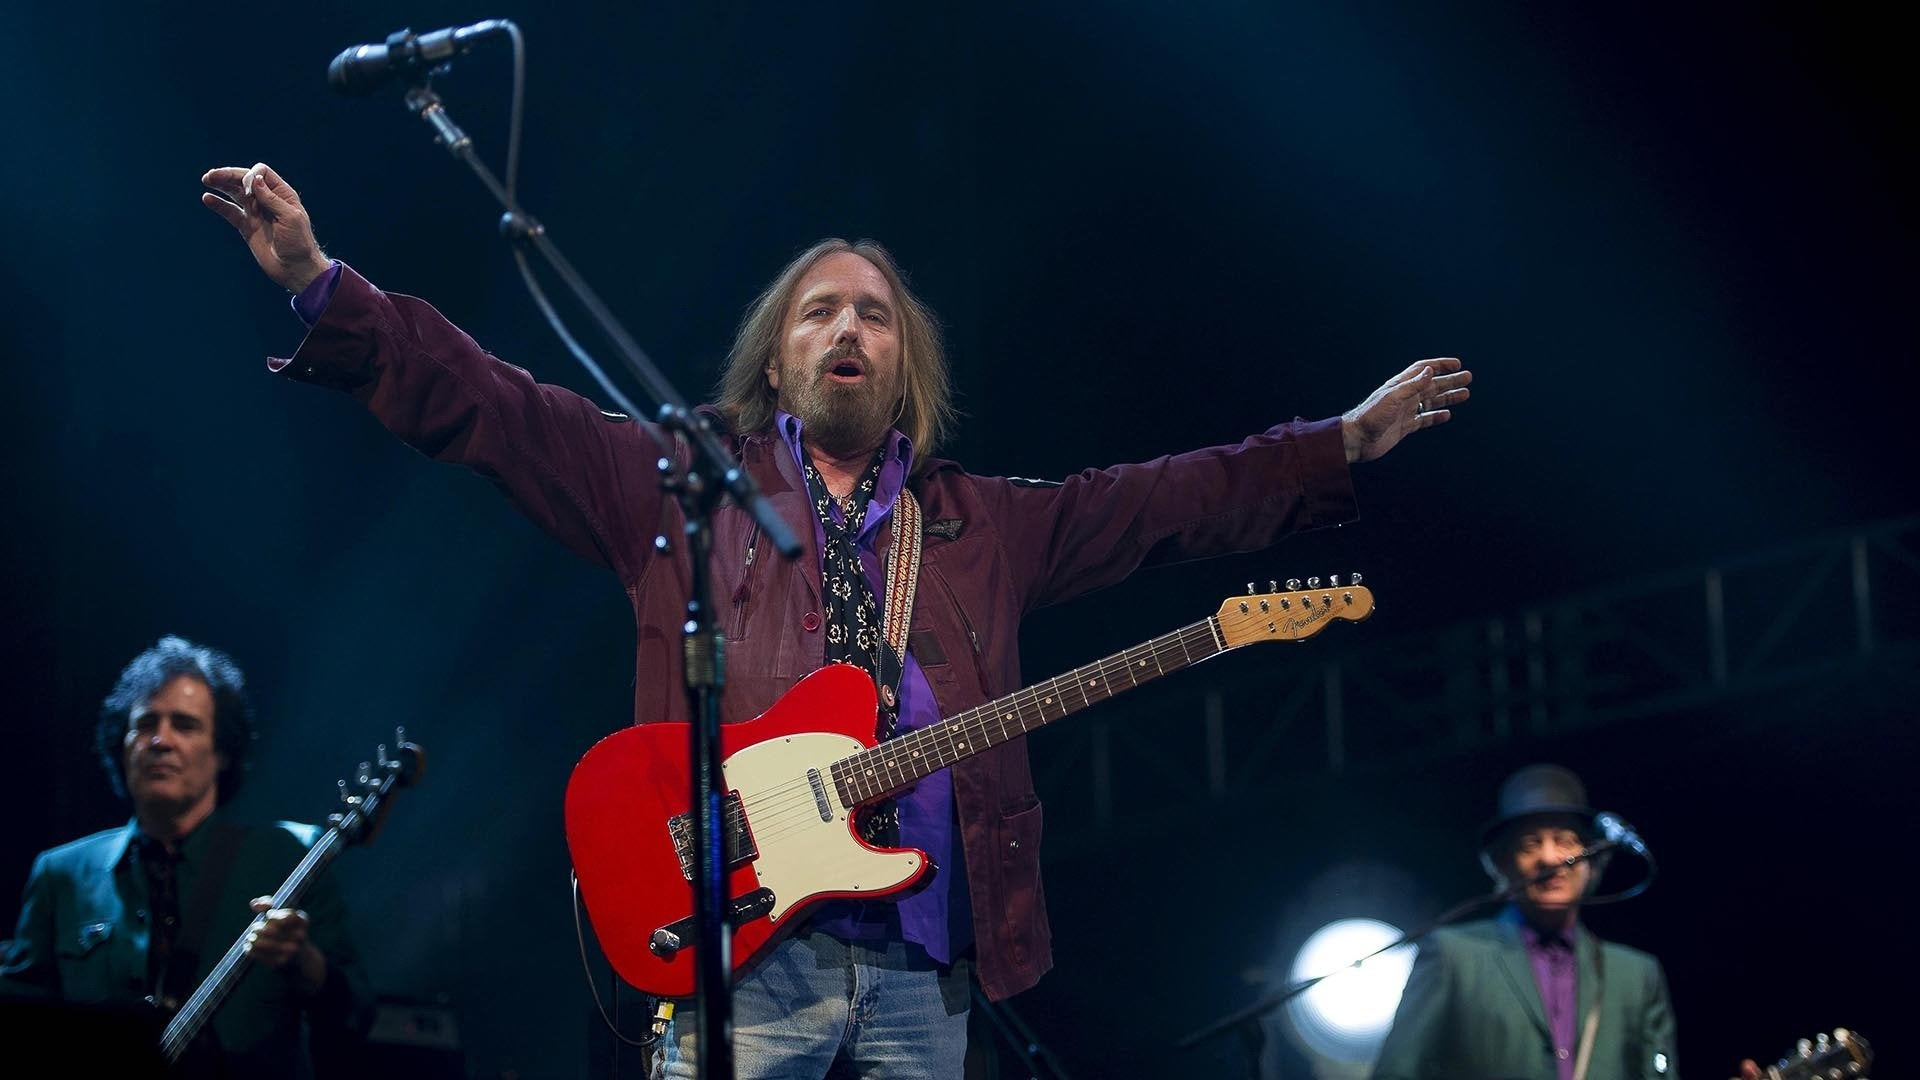 Tom Petty and The Heartbreakers at Fenway Park